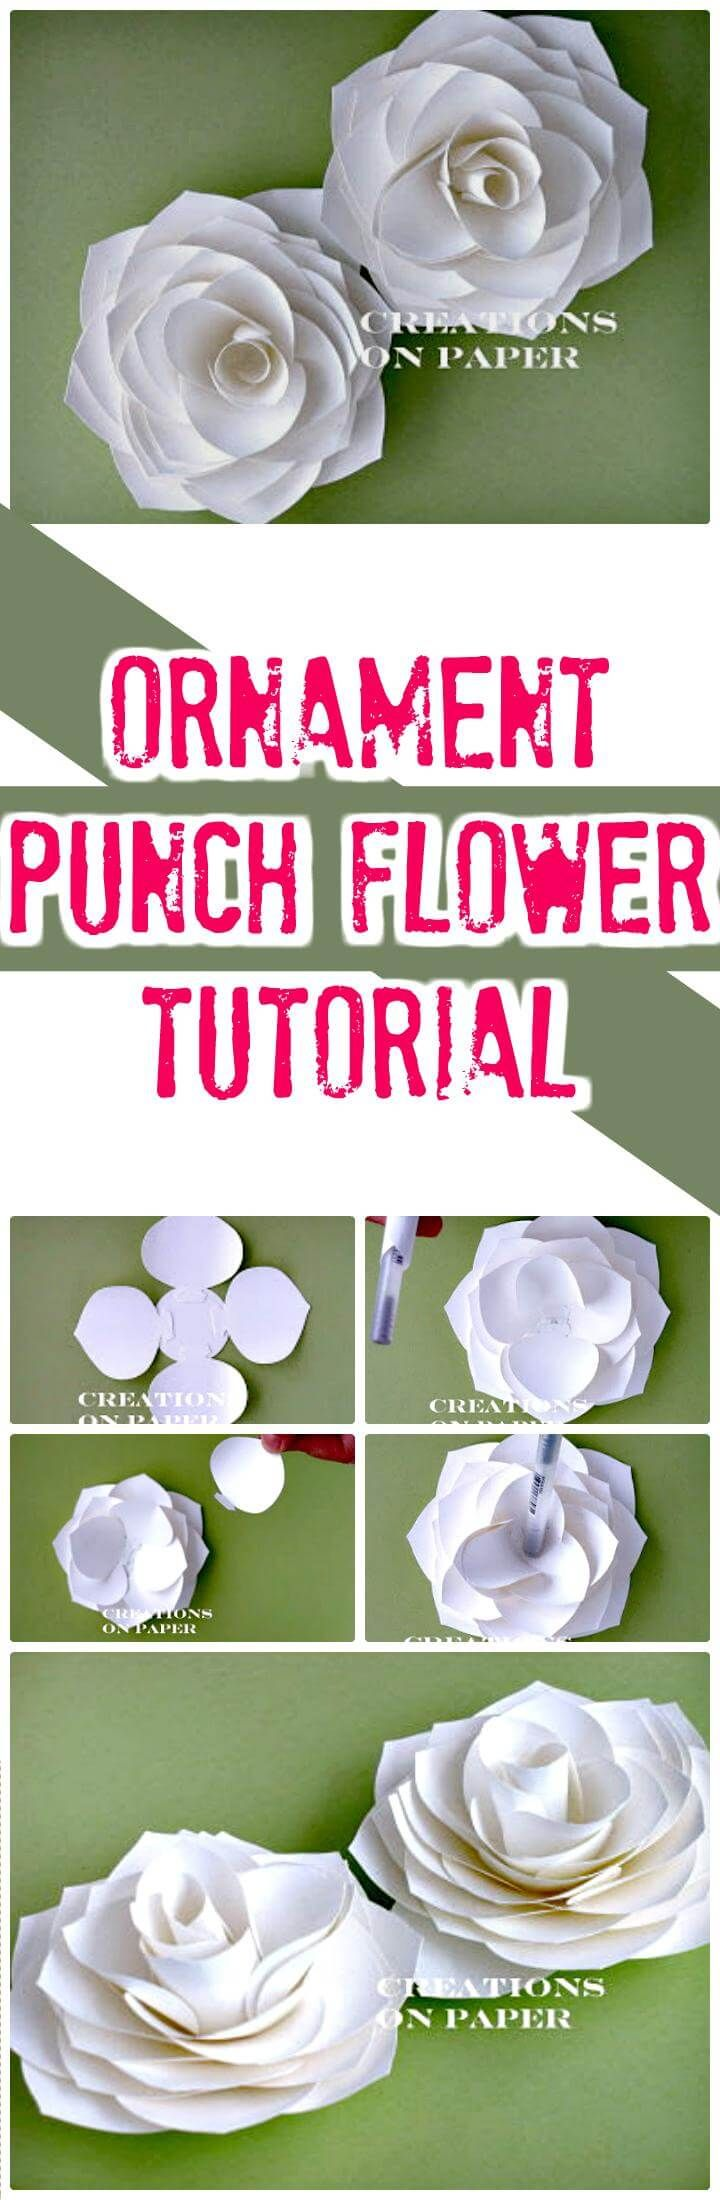 Easy Ornament Punch Flower Tutorial - 30 DIY Paper Flowers (Step by Step Tutorials / Template) - Page 4 of 6 - DIY & Crafts